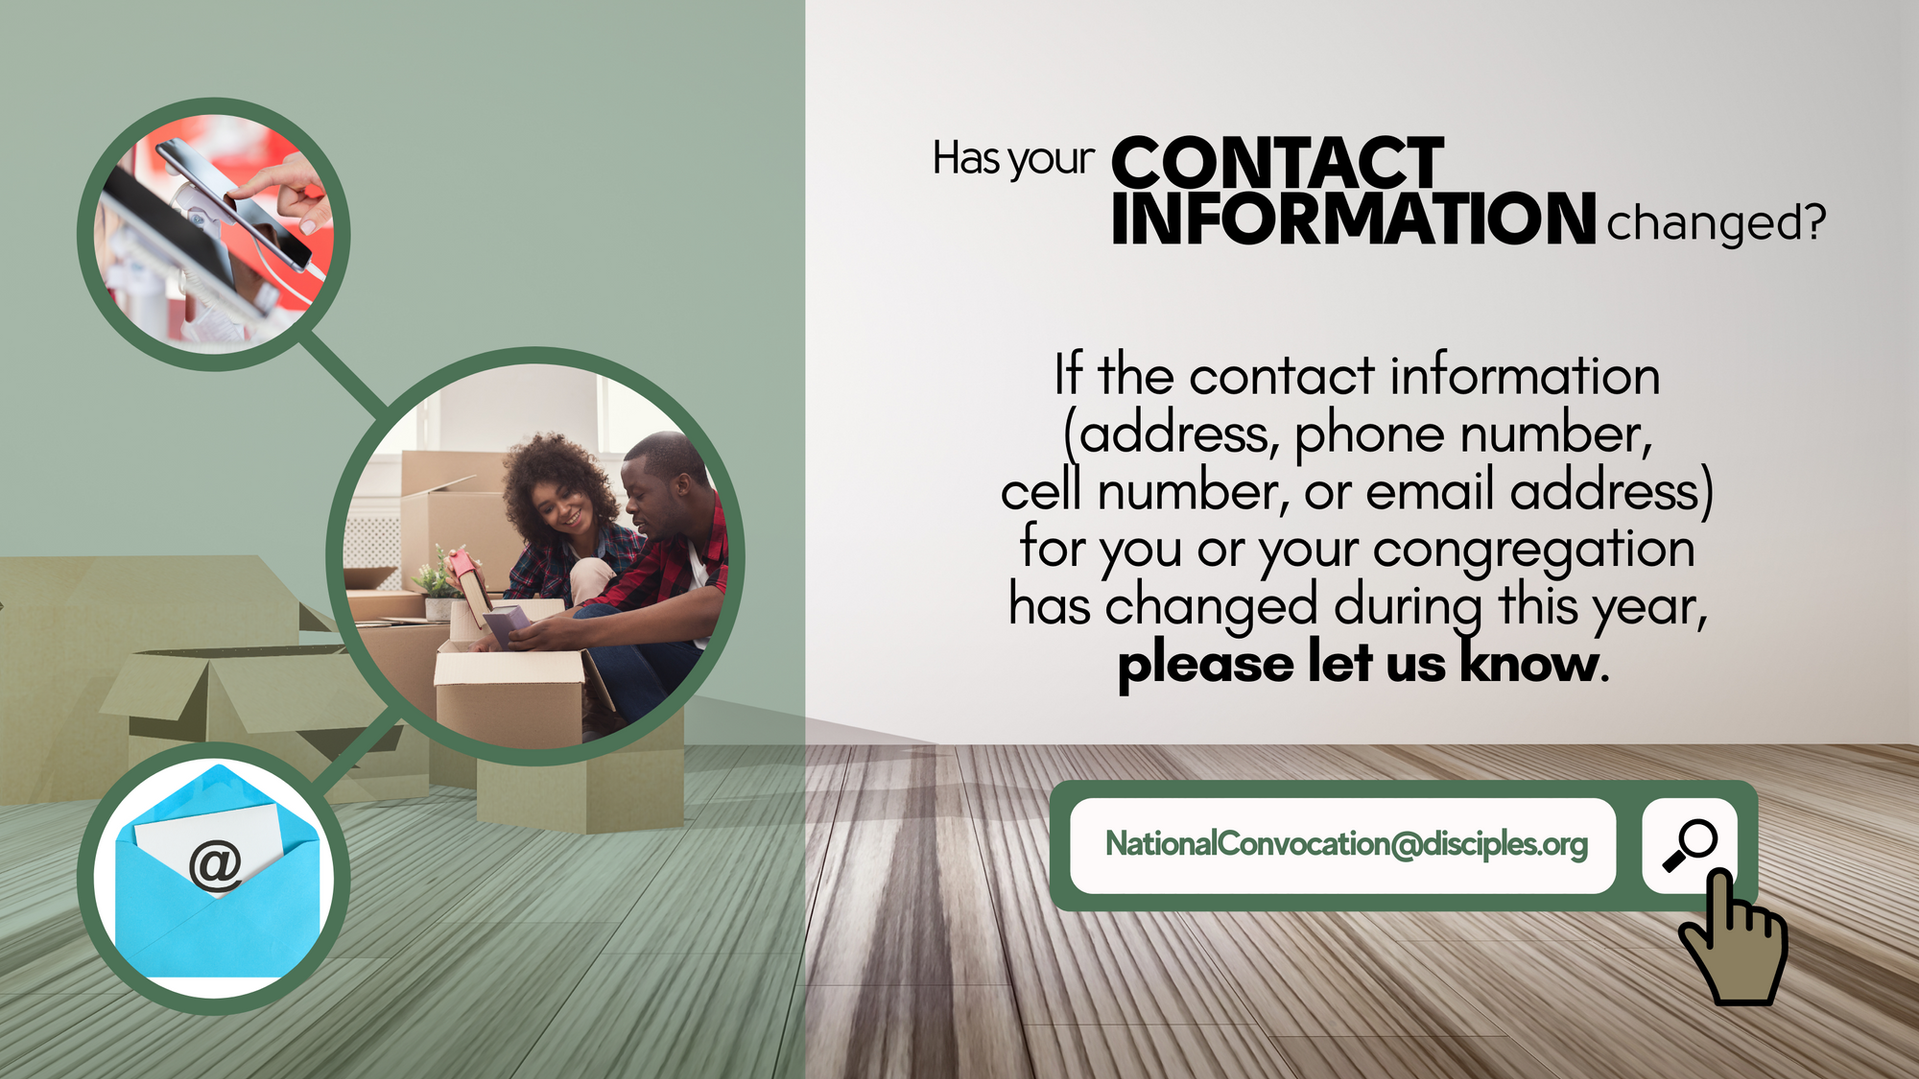 Contact Information Changed